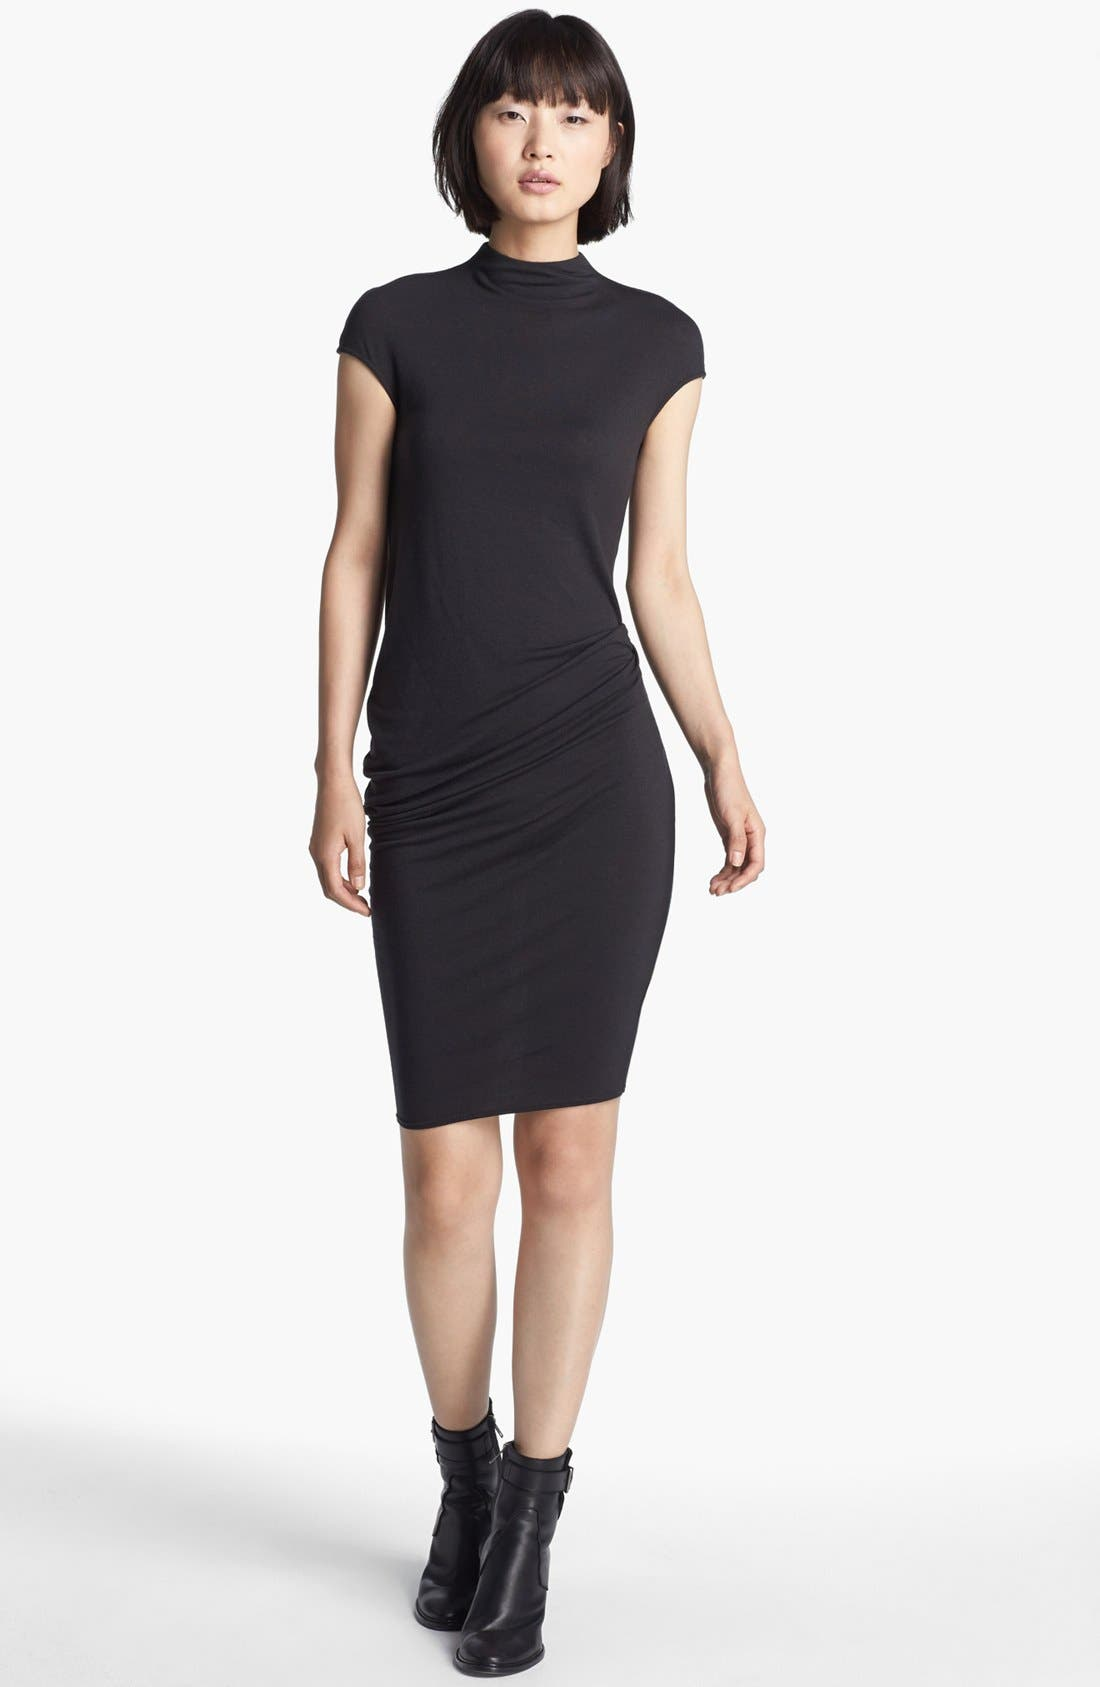 Main Image - HELMUT Helmut Lang 'Nova' Draped Jersey Dress